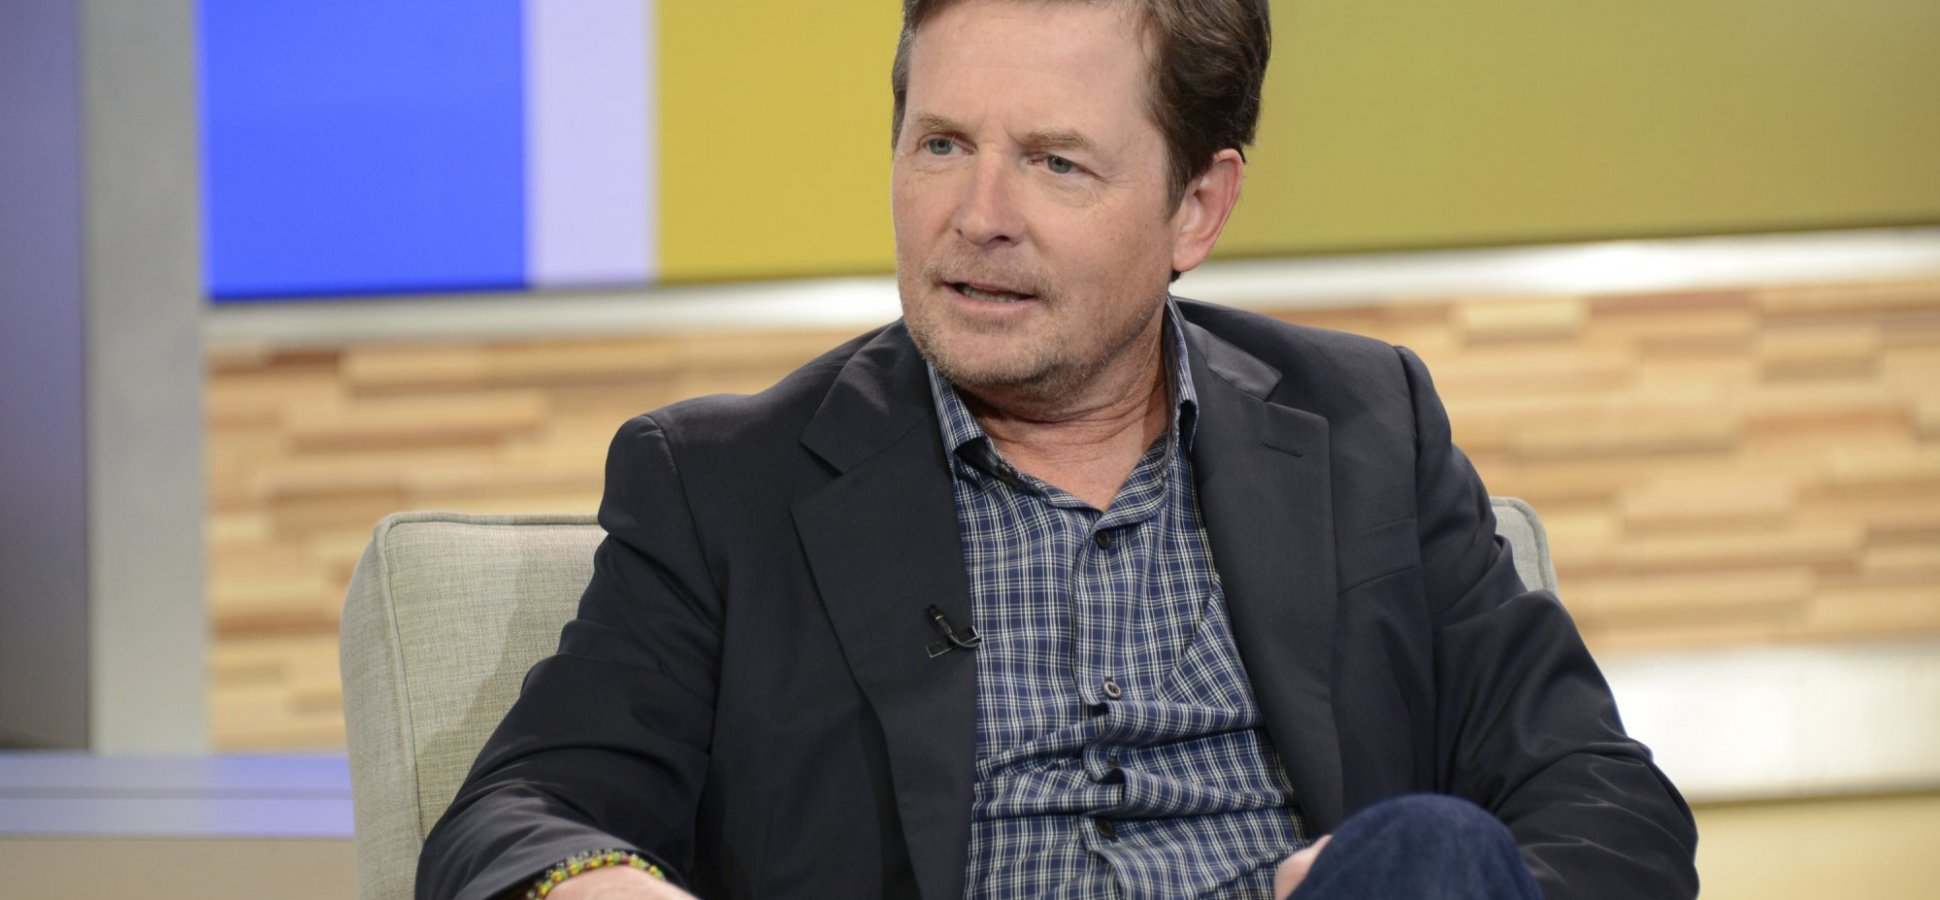 In Just 6 Words, Millionaire Michael J. Fox Drops Some of the Best Career Advice You'll Ever Hear